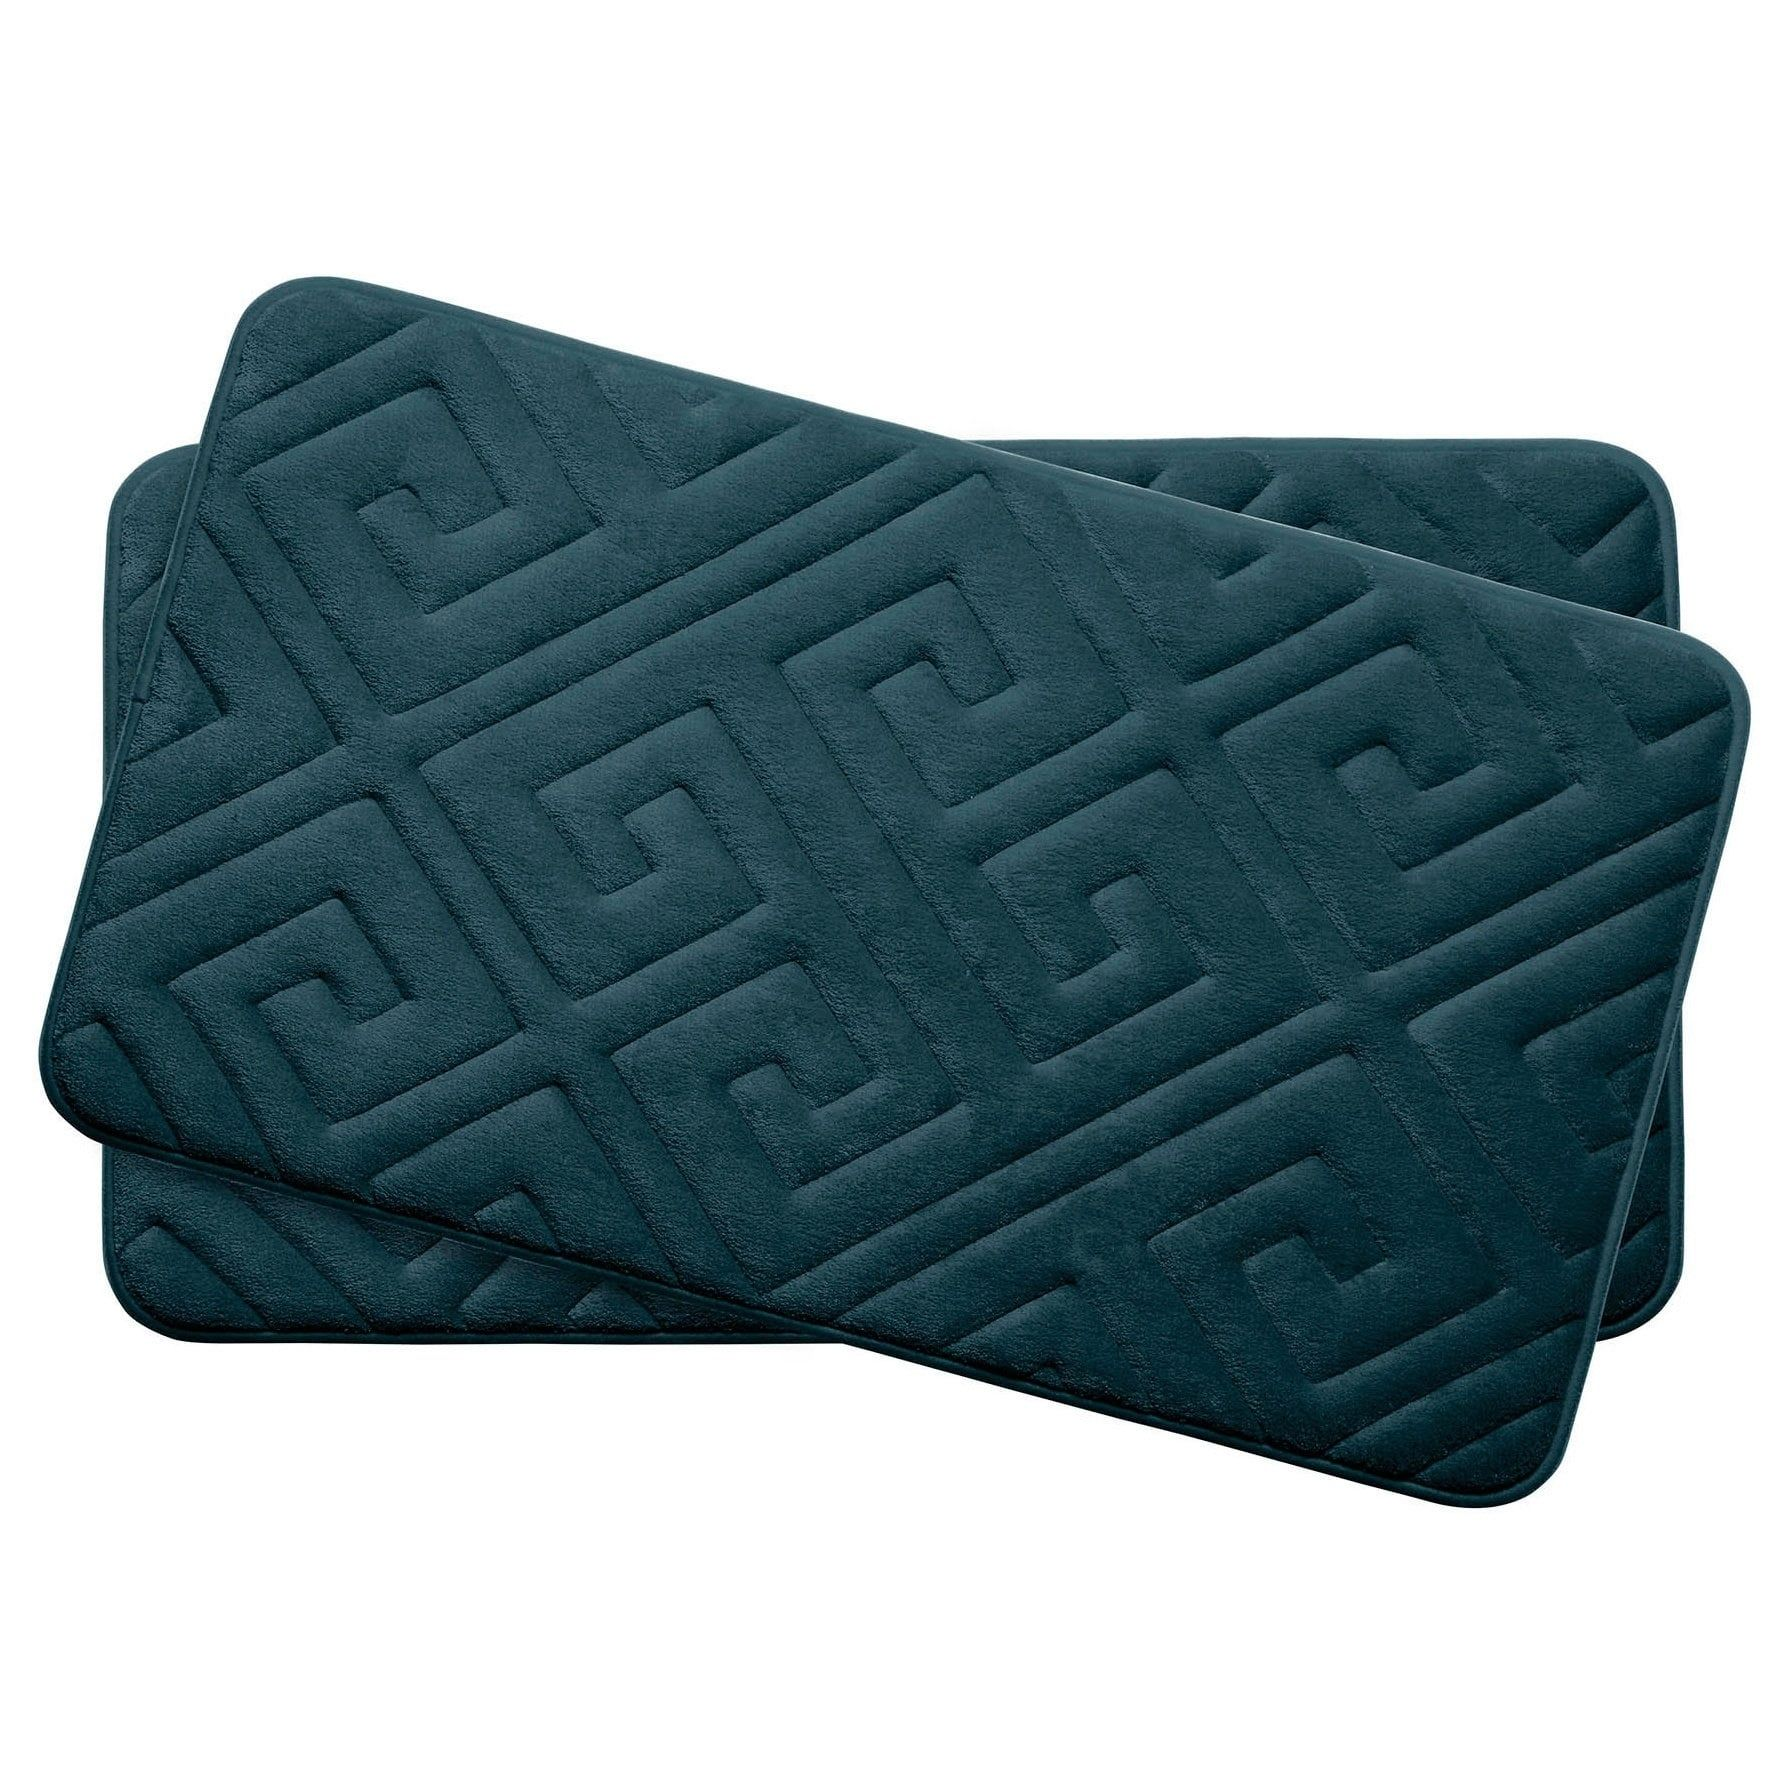 Caicos Memory Foam 17 In X 24 In 2 Piece Bath Mat Set W